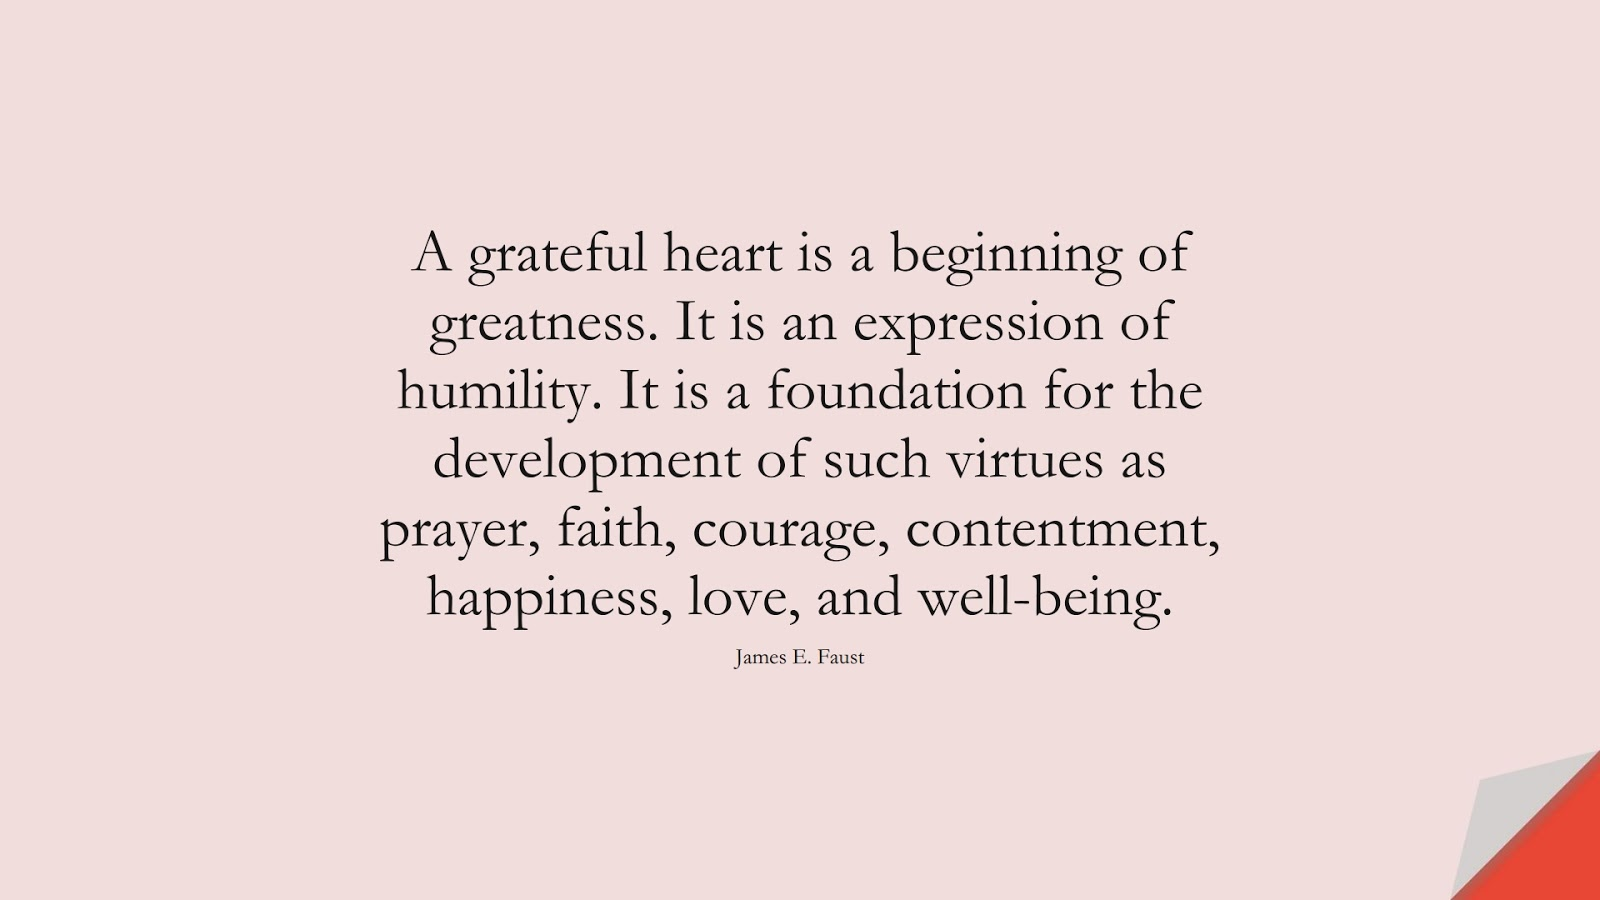 A grateful heart is a beginning of greatness. It is an expression of humility. It is a foundation for the development of such virtues as prayer, faith, courage, contentment, happiness, love, and well-being. (James E. Faust);  #HappinessQuotes